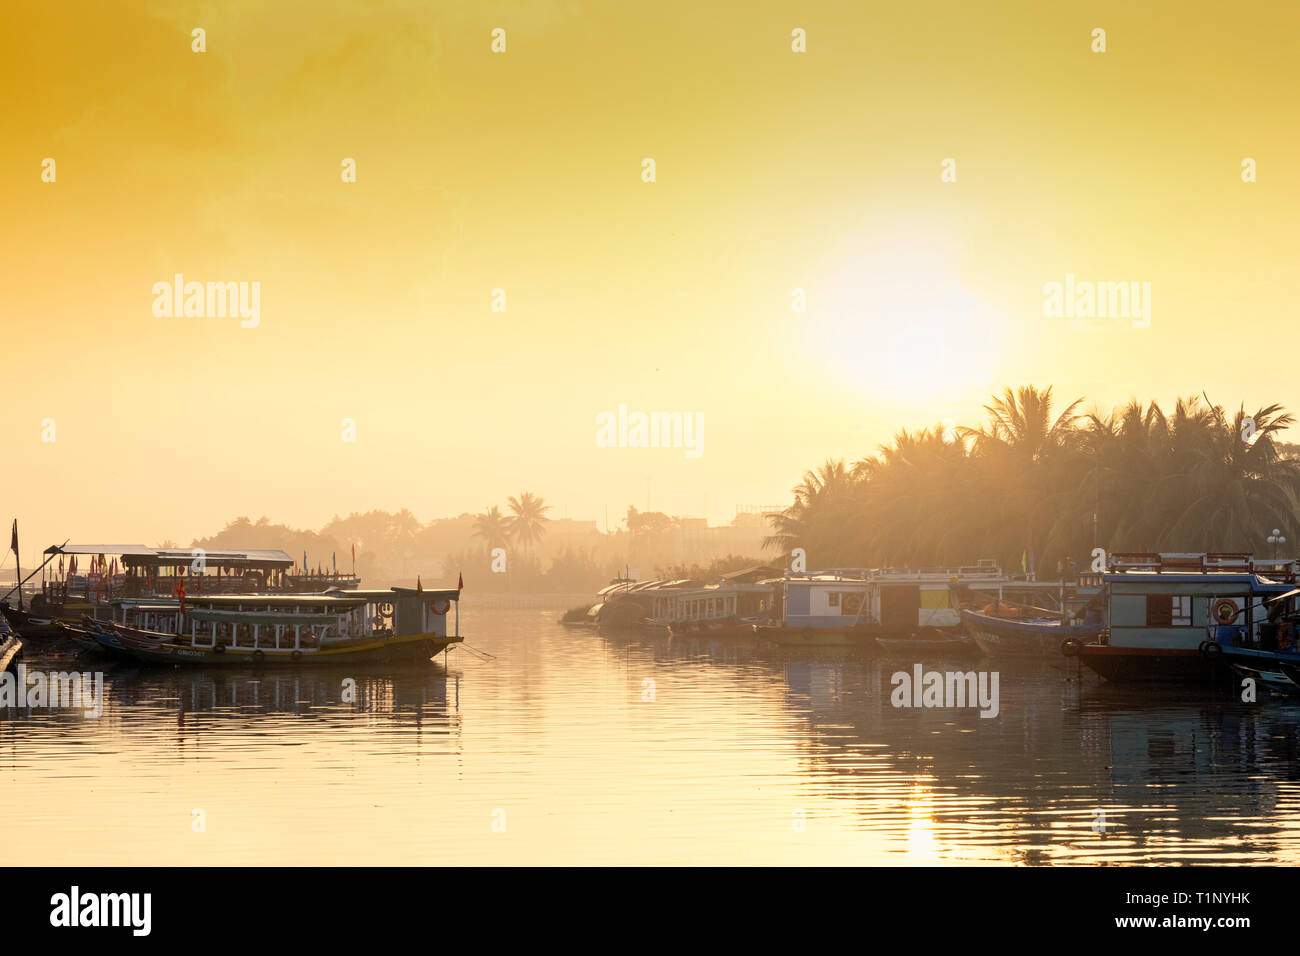 Golden light on the Thu Bon river in Hot An, showing silhouetted boats - Stock Image